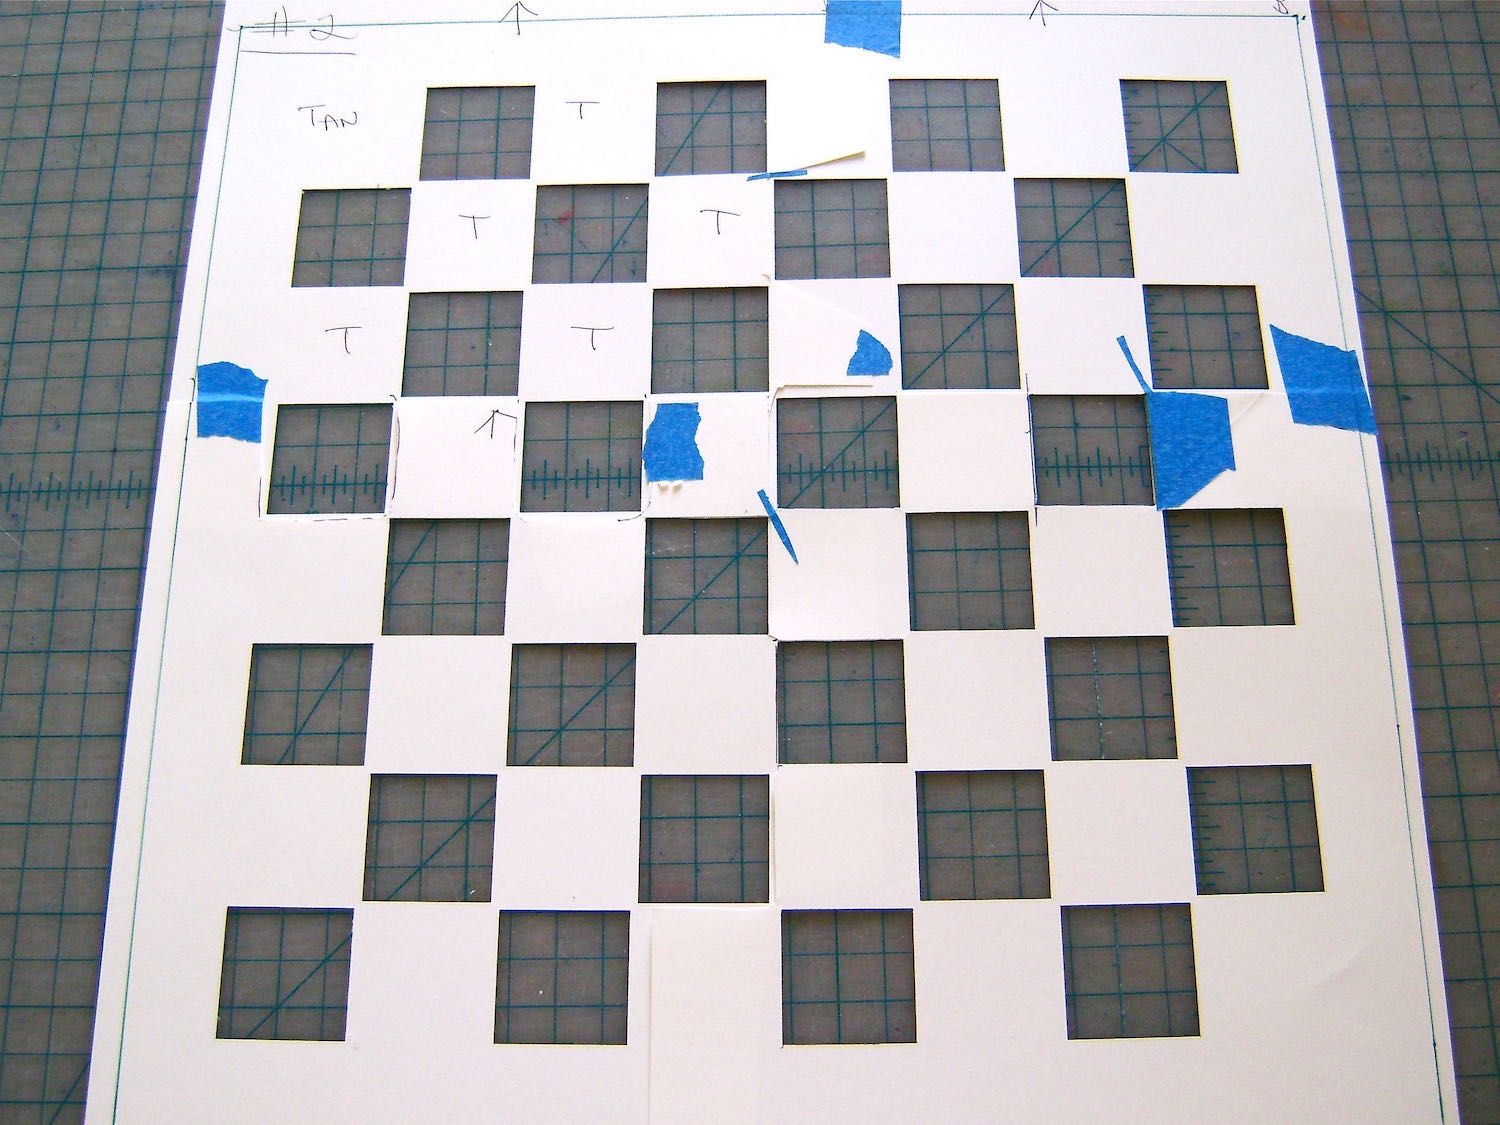 """step 2 - Tape the copies together allowing a one-inch border on the four outer edges. The thin black lines indicate the edges of the playing board area. Once taped together, the playing area should measure 12"""" square. The complete card stock template should measure 14"""" square. With a craft knife and ruler, cut out all the black squares."""